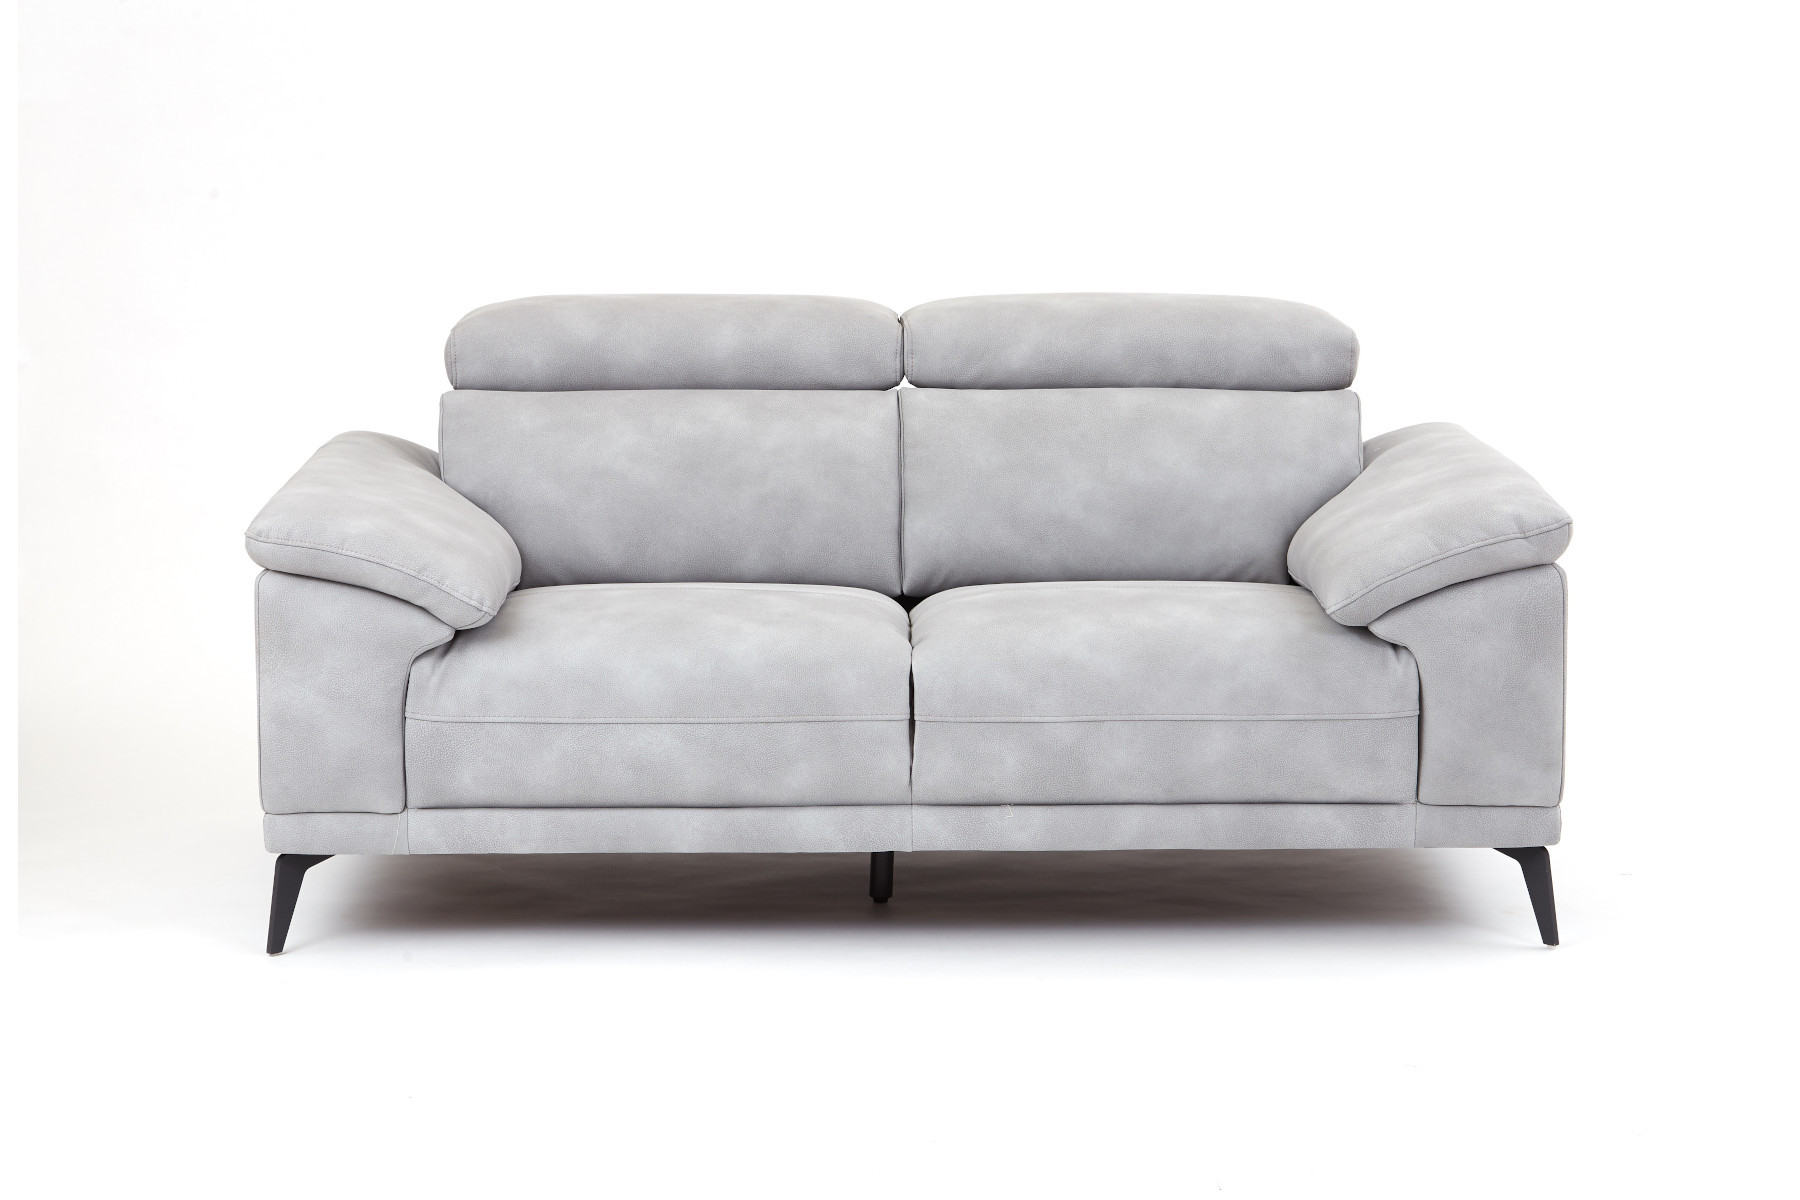 Montero 2 Seater Sofa - Grey